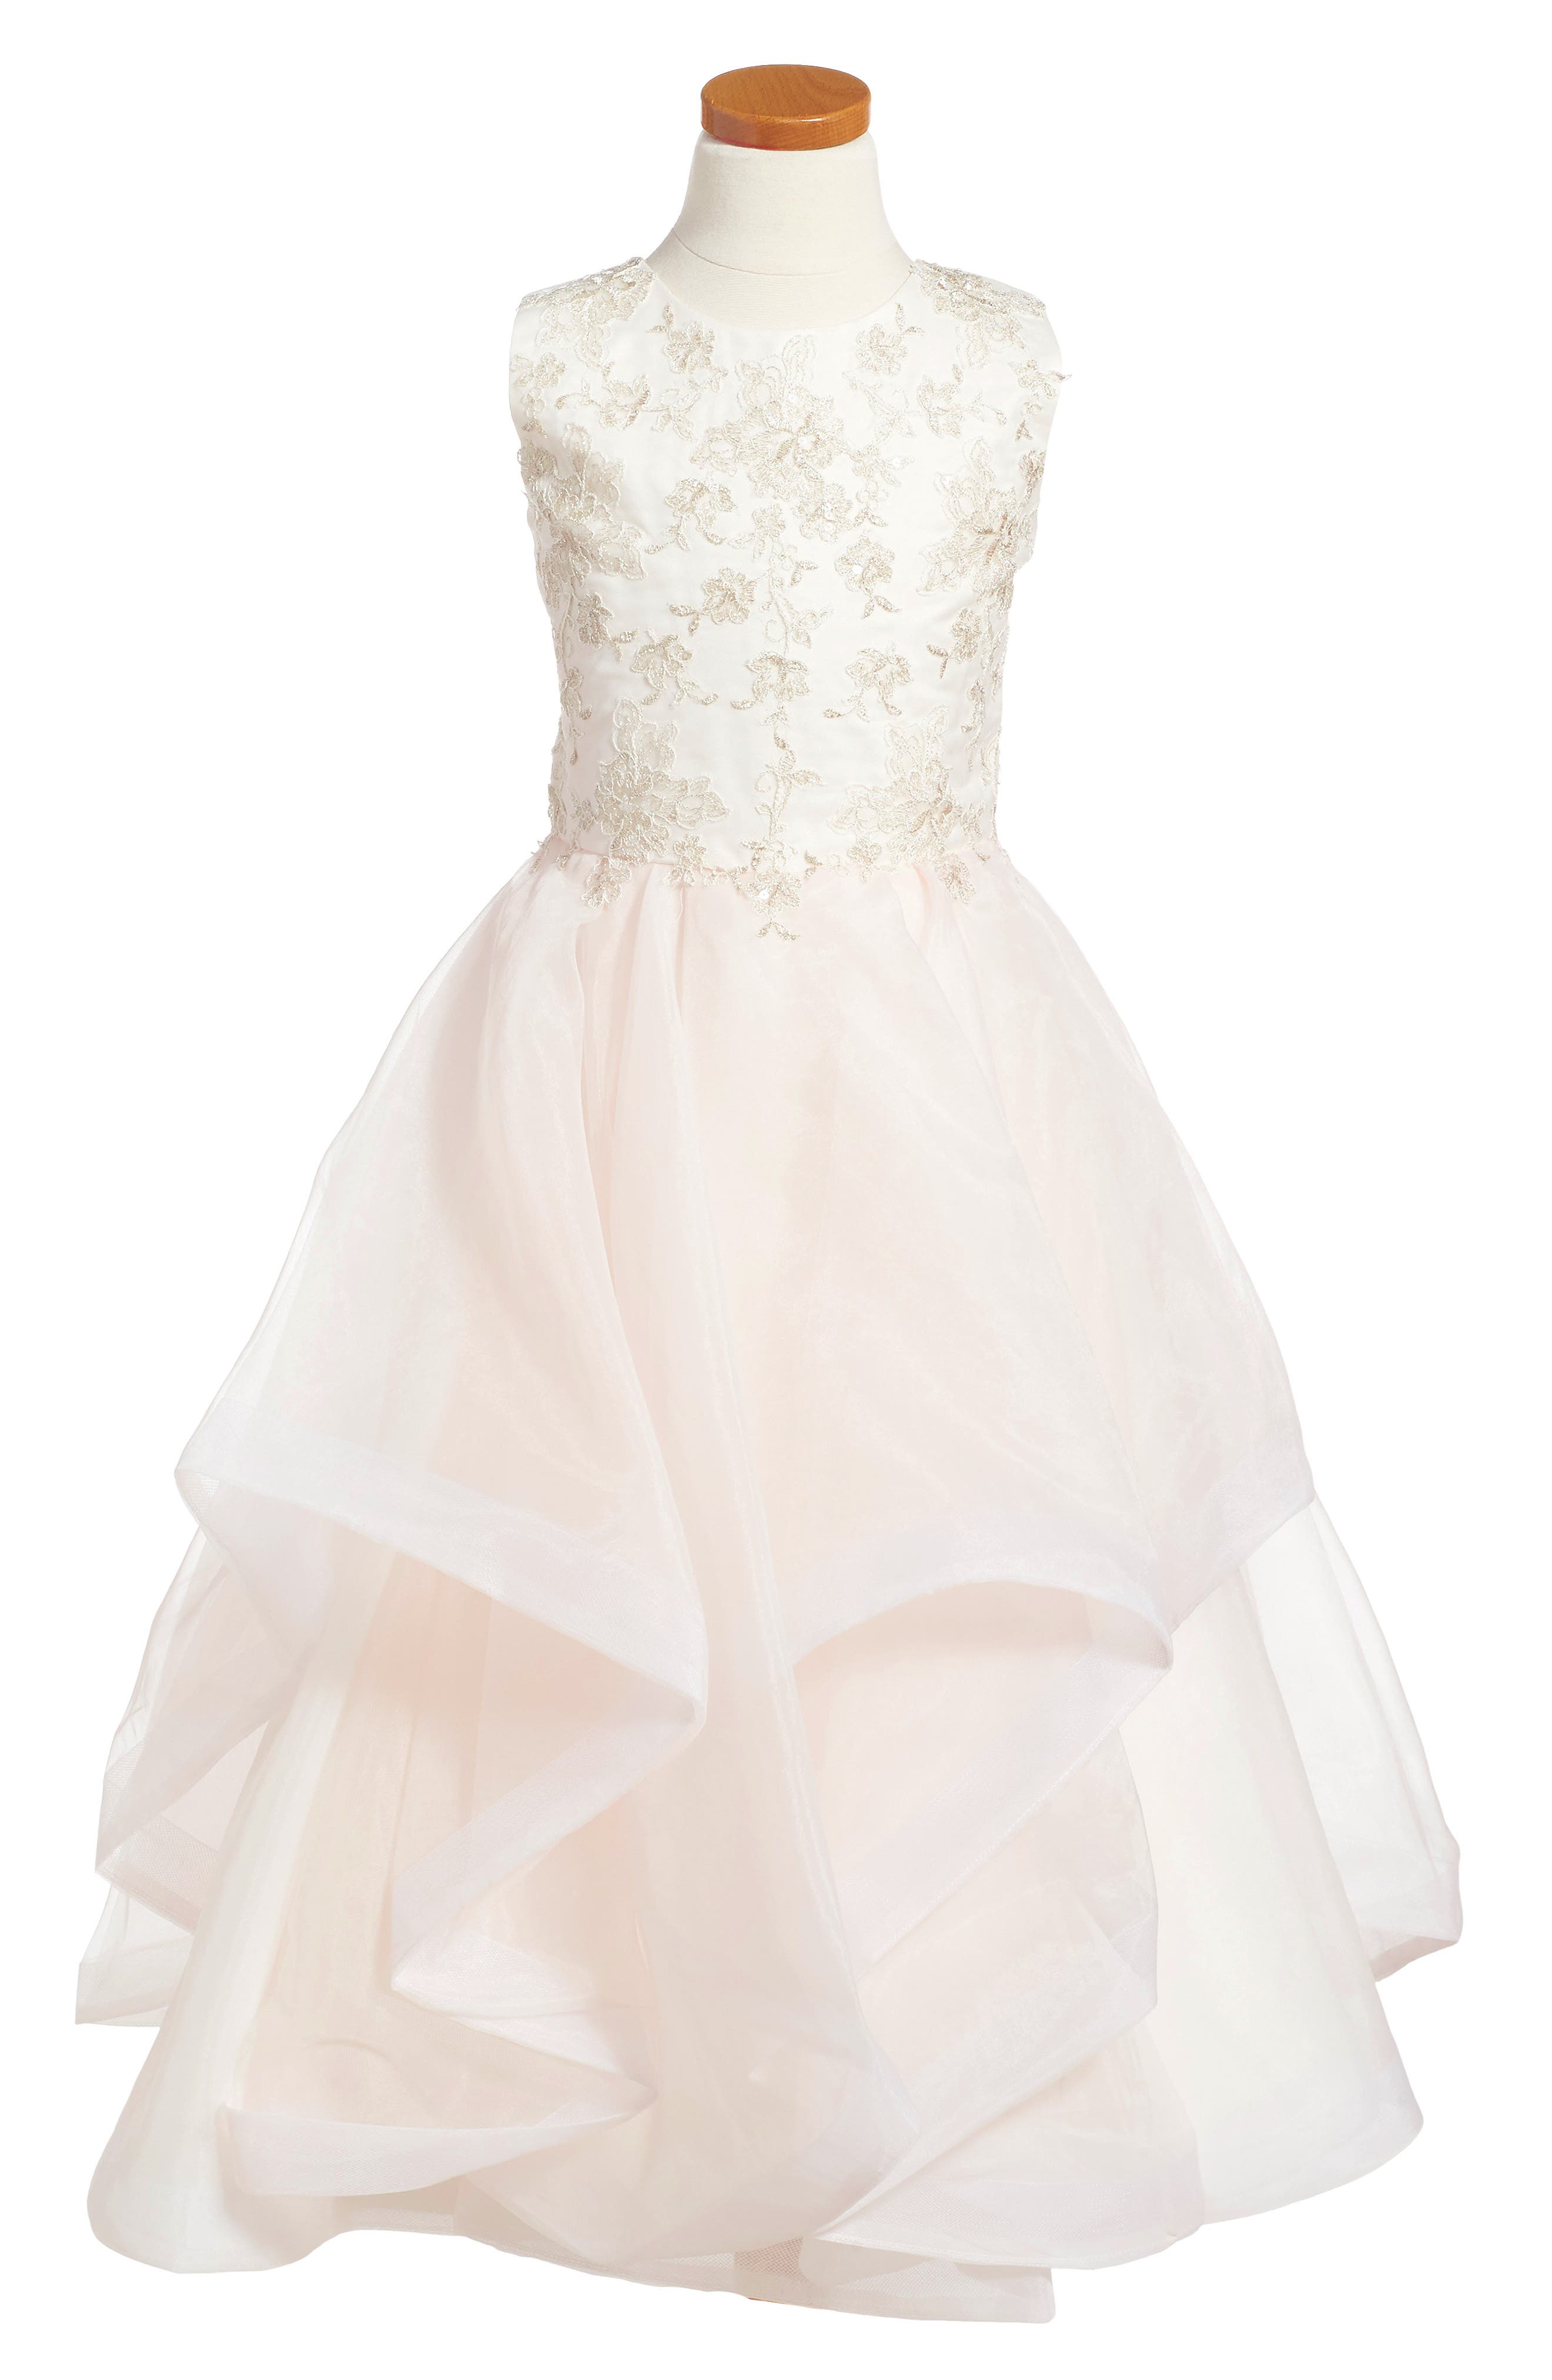 Tulle & Organza Dress,                         Main,                         color, Ivory/ Pink